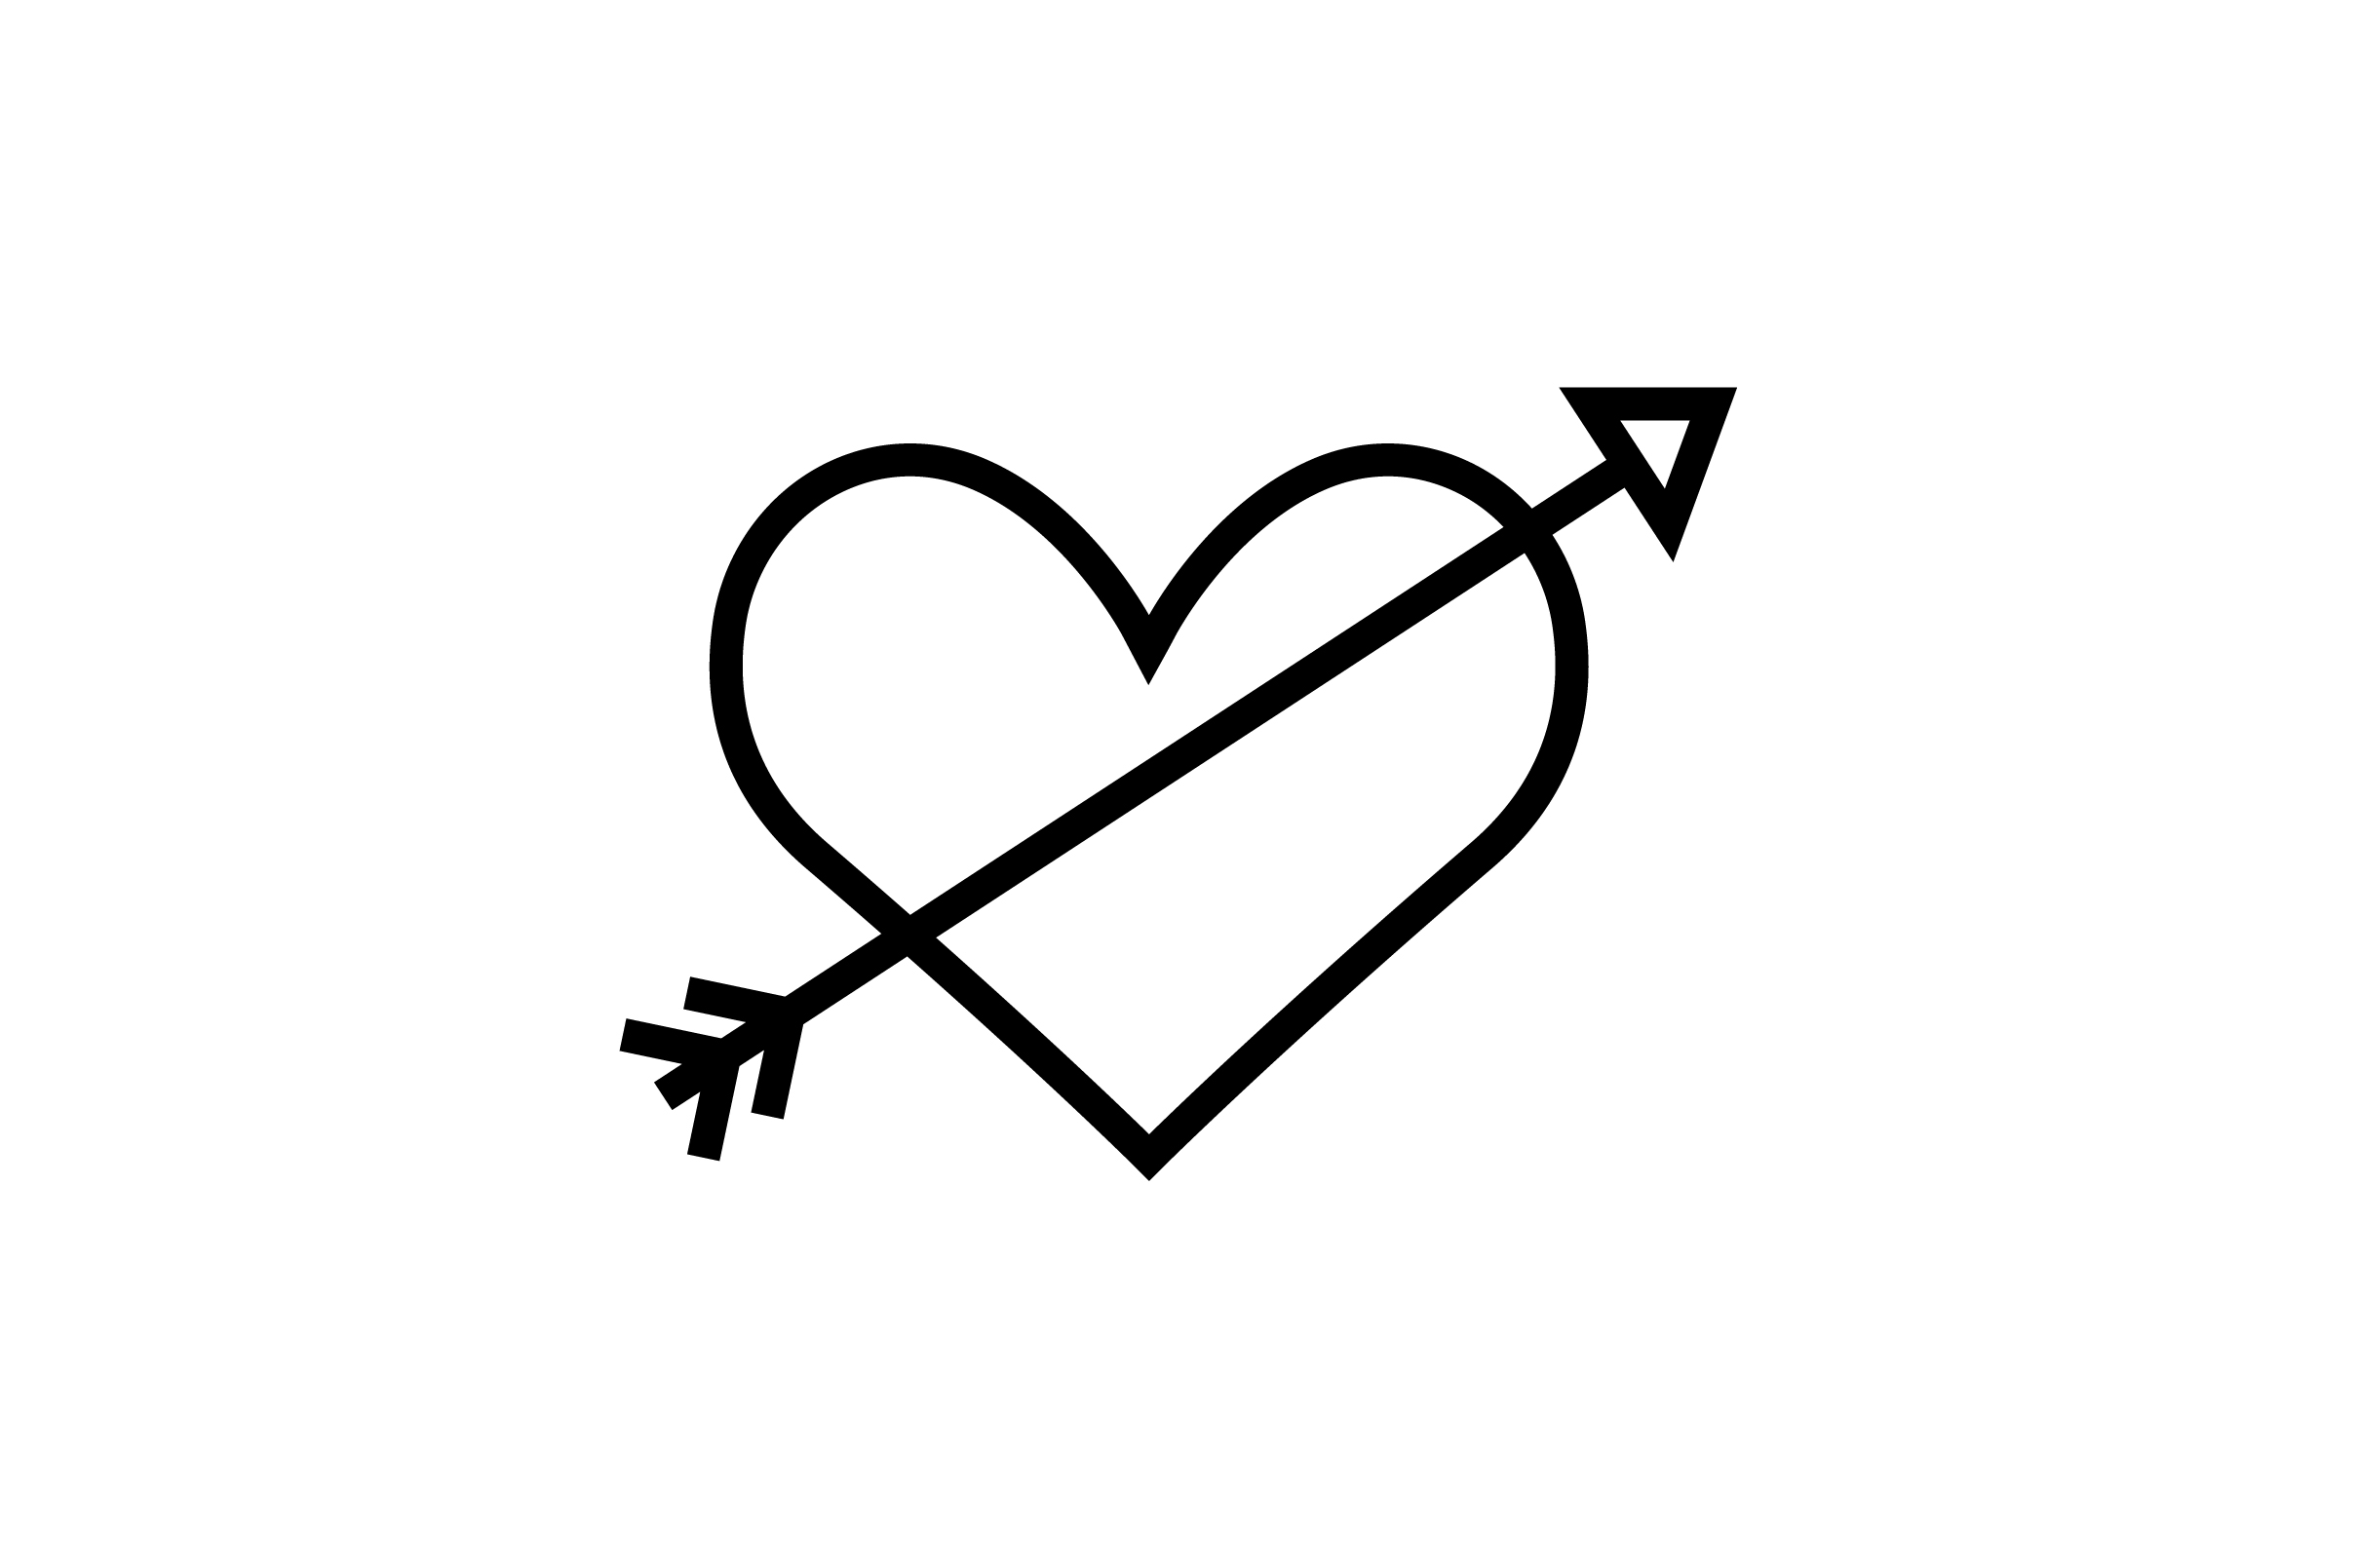 Download Free Valentine Heart With Arrow Icon Graphic By Riduwan Molla for Cricut Explore, Silhouette and other cutting machines.